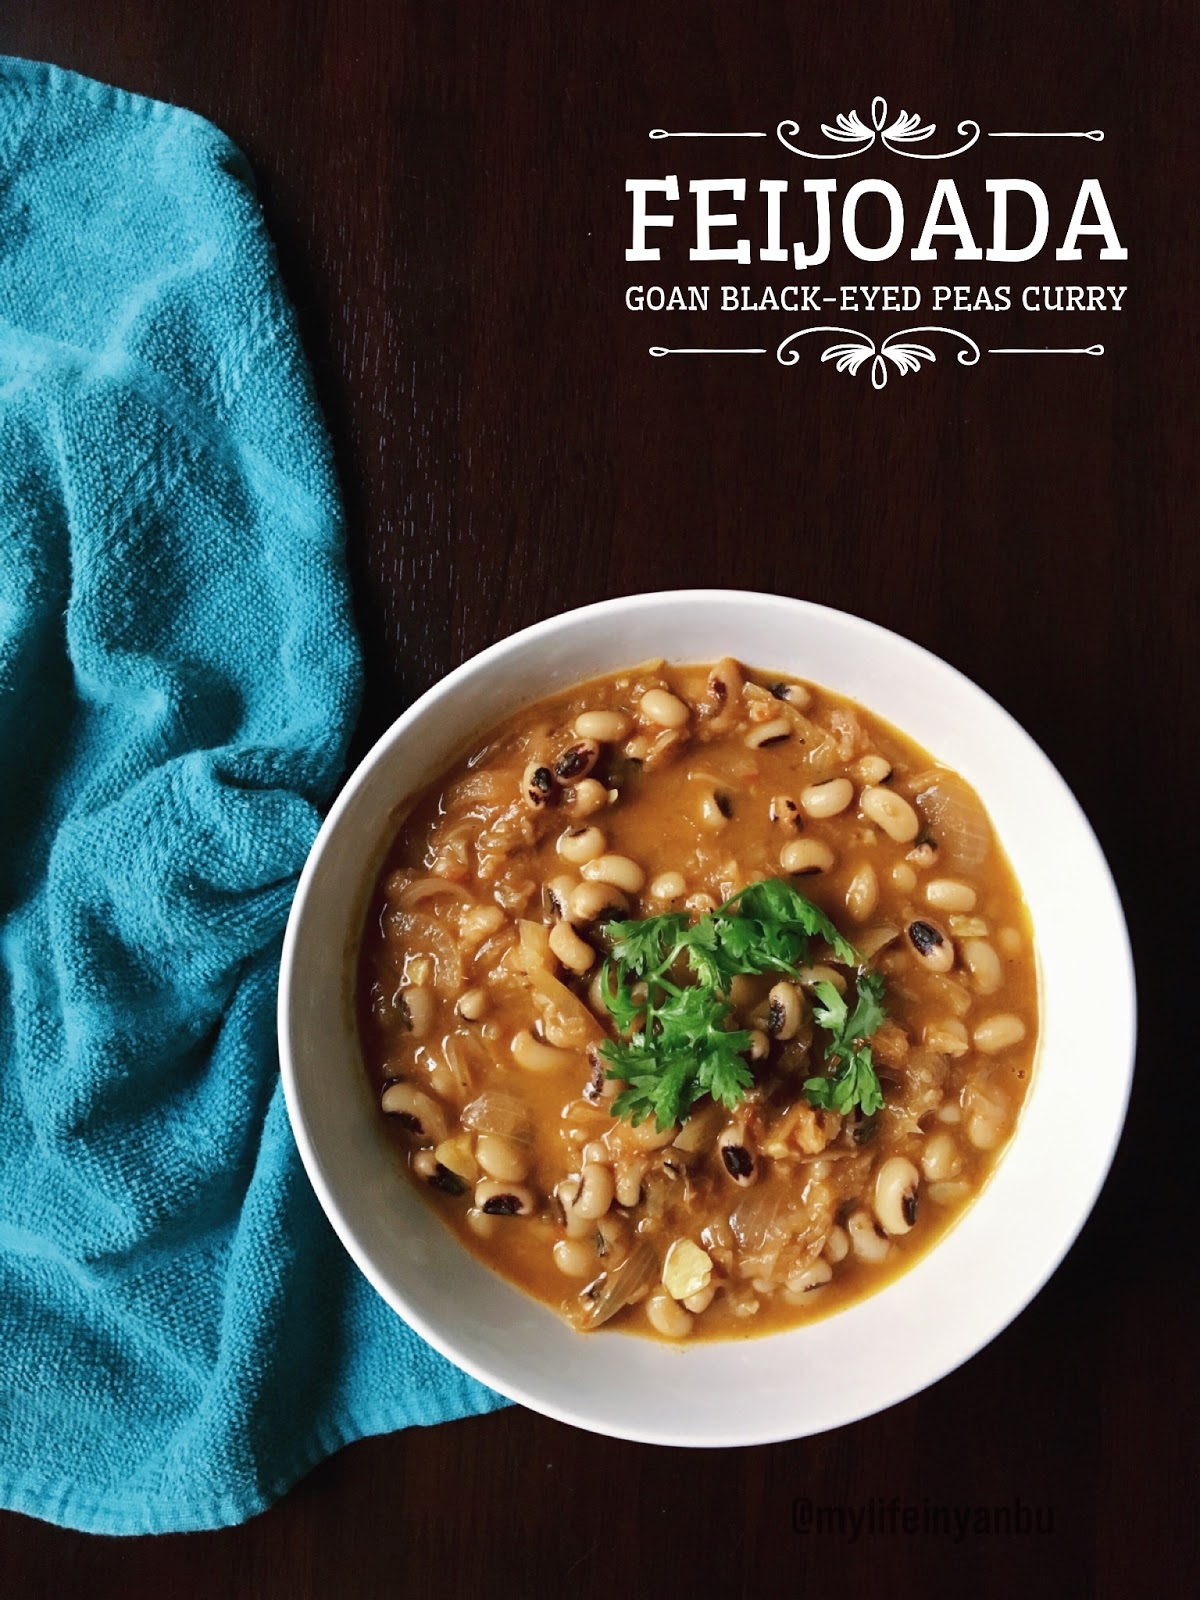 Feijoada | Goan Black-eyed Peas Curry